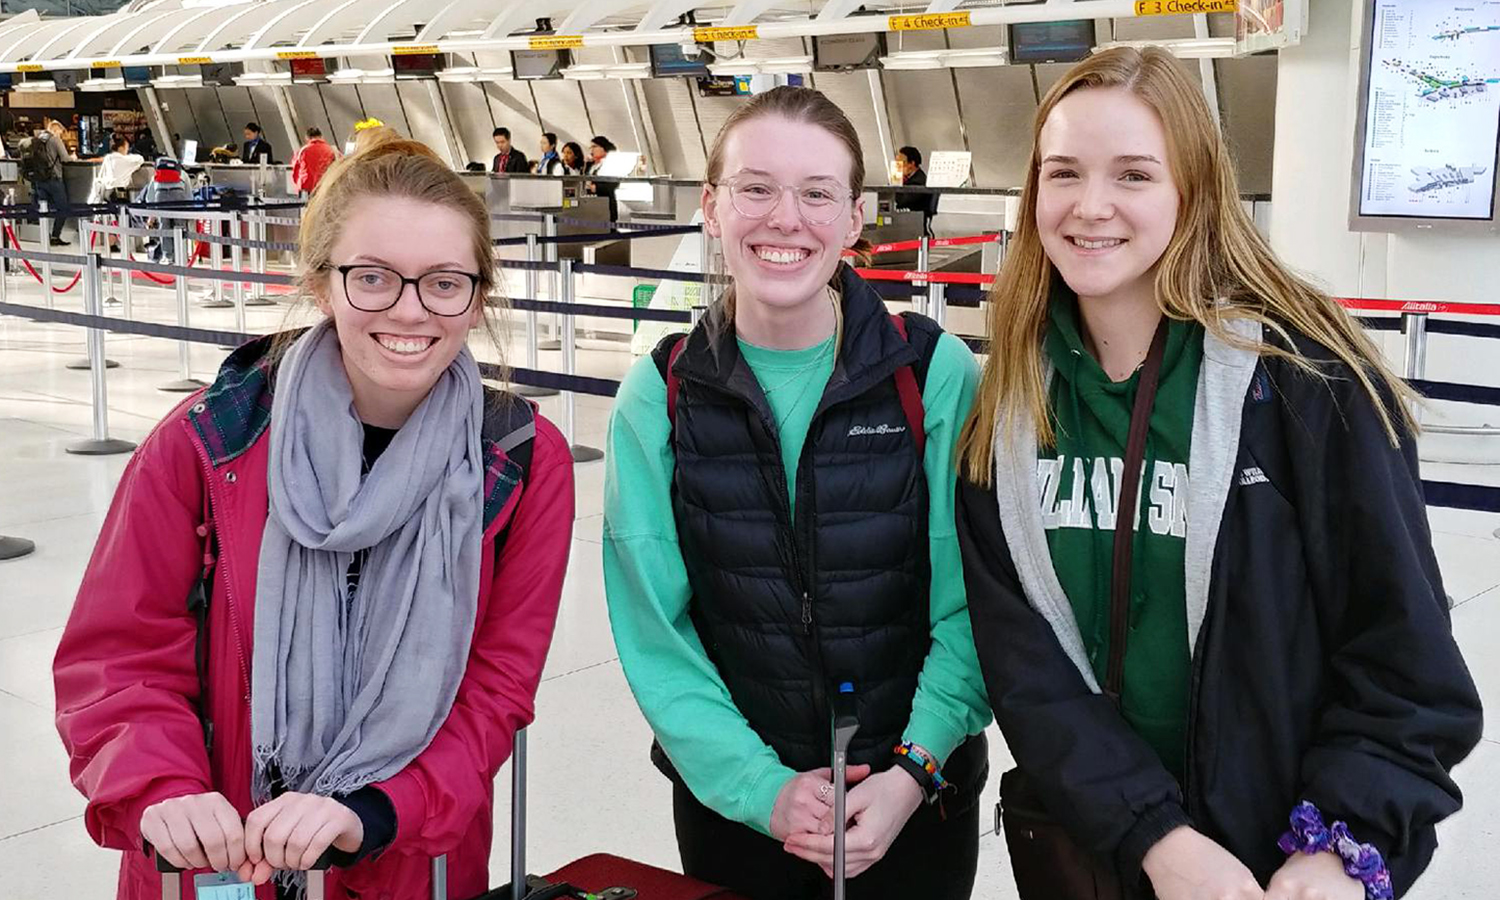 Elizabeth Morgan '19, Carly Kelly '20 and Morgan Hekking '19 at John F. Kennedy International Airport get ready to board their flight for HWS's abroad program to Rabat, Morocco.